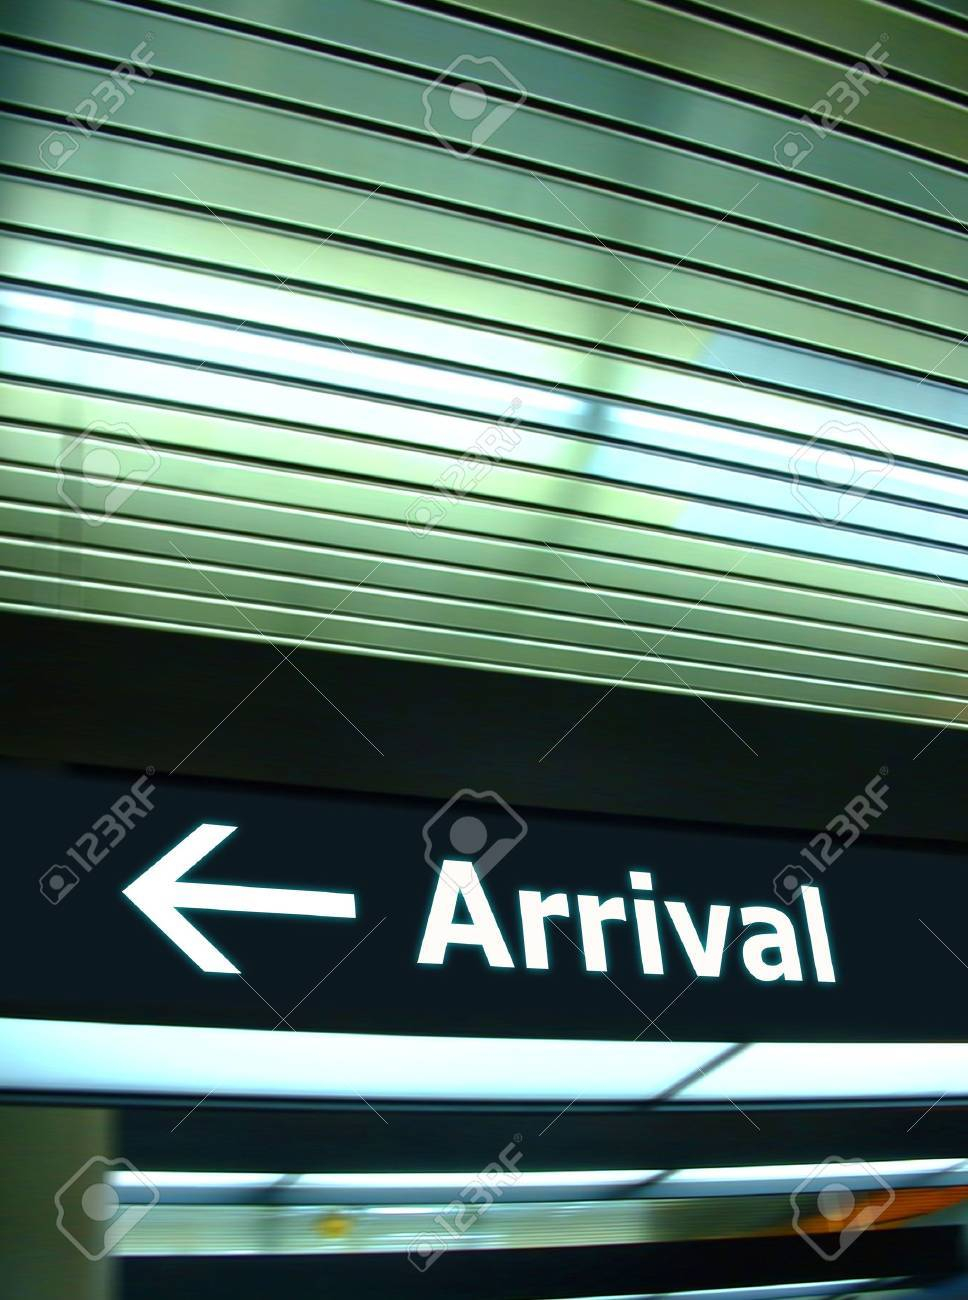 Tourist info signage in airport in international language Stock Photo - 6190253